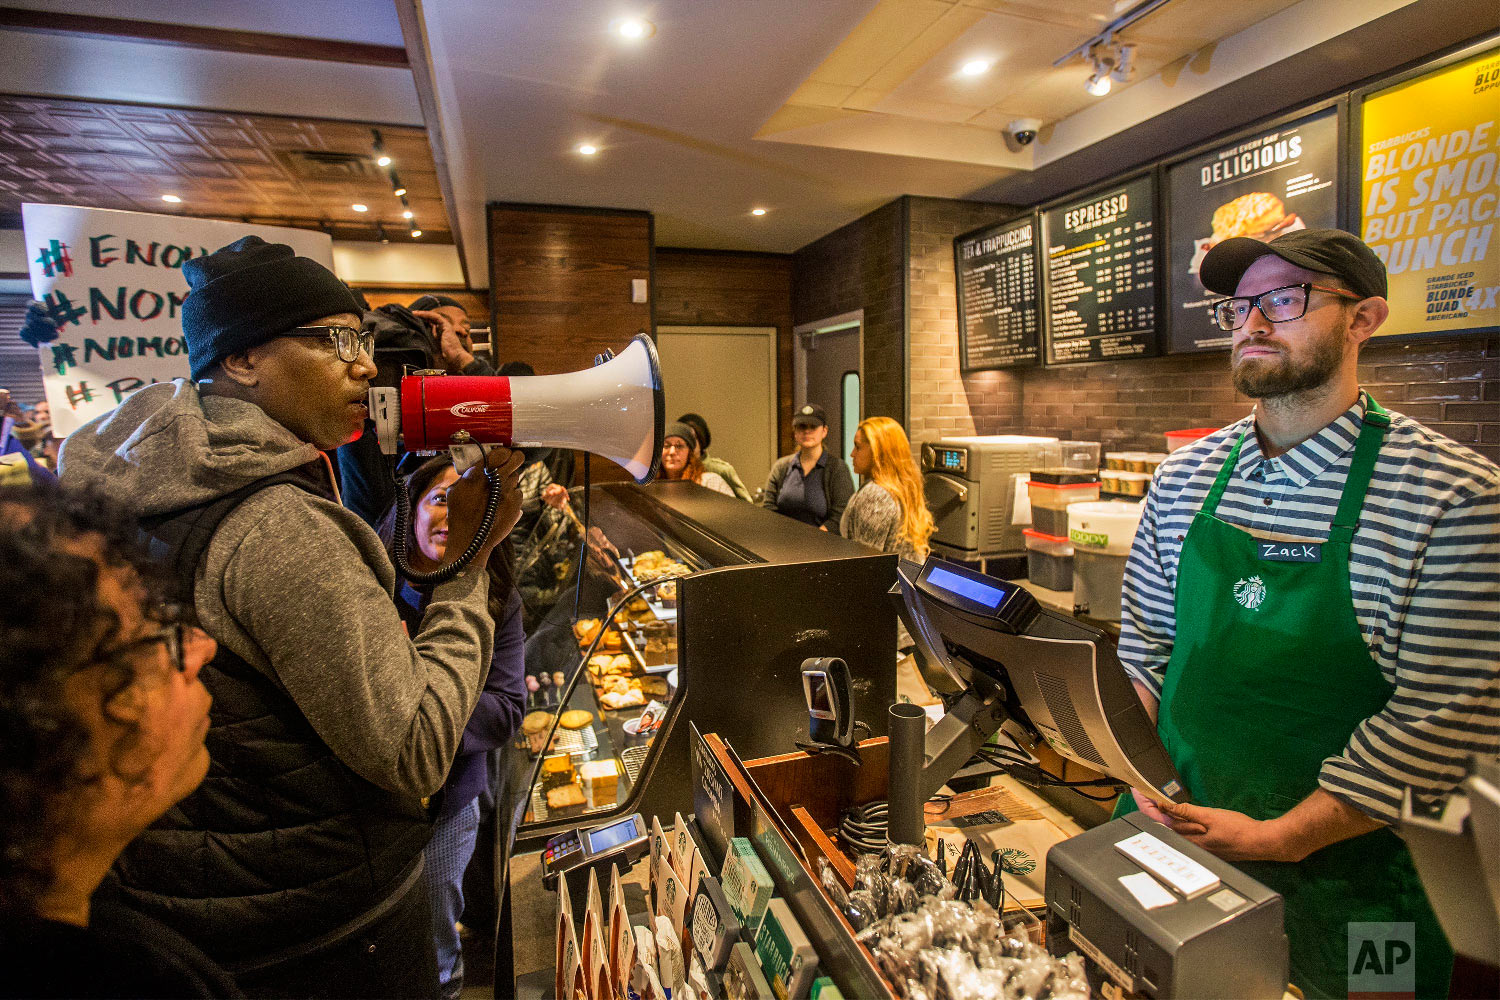 Local Black Lives Matter activist Asa Khalif, left, uses a megaphone inside a Starbucks on April 15, 2018, demanding the firing of the manager who called police on two black men who had entered the store, but didn't make a purchase, resulting in their arrest. The arrests were captured on video that quickly gained traction on social media. (Mark Bryant/The Philadelphia Inquirer via AP)